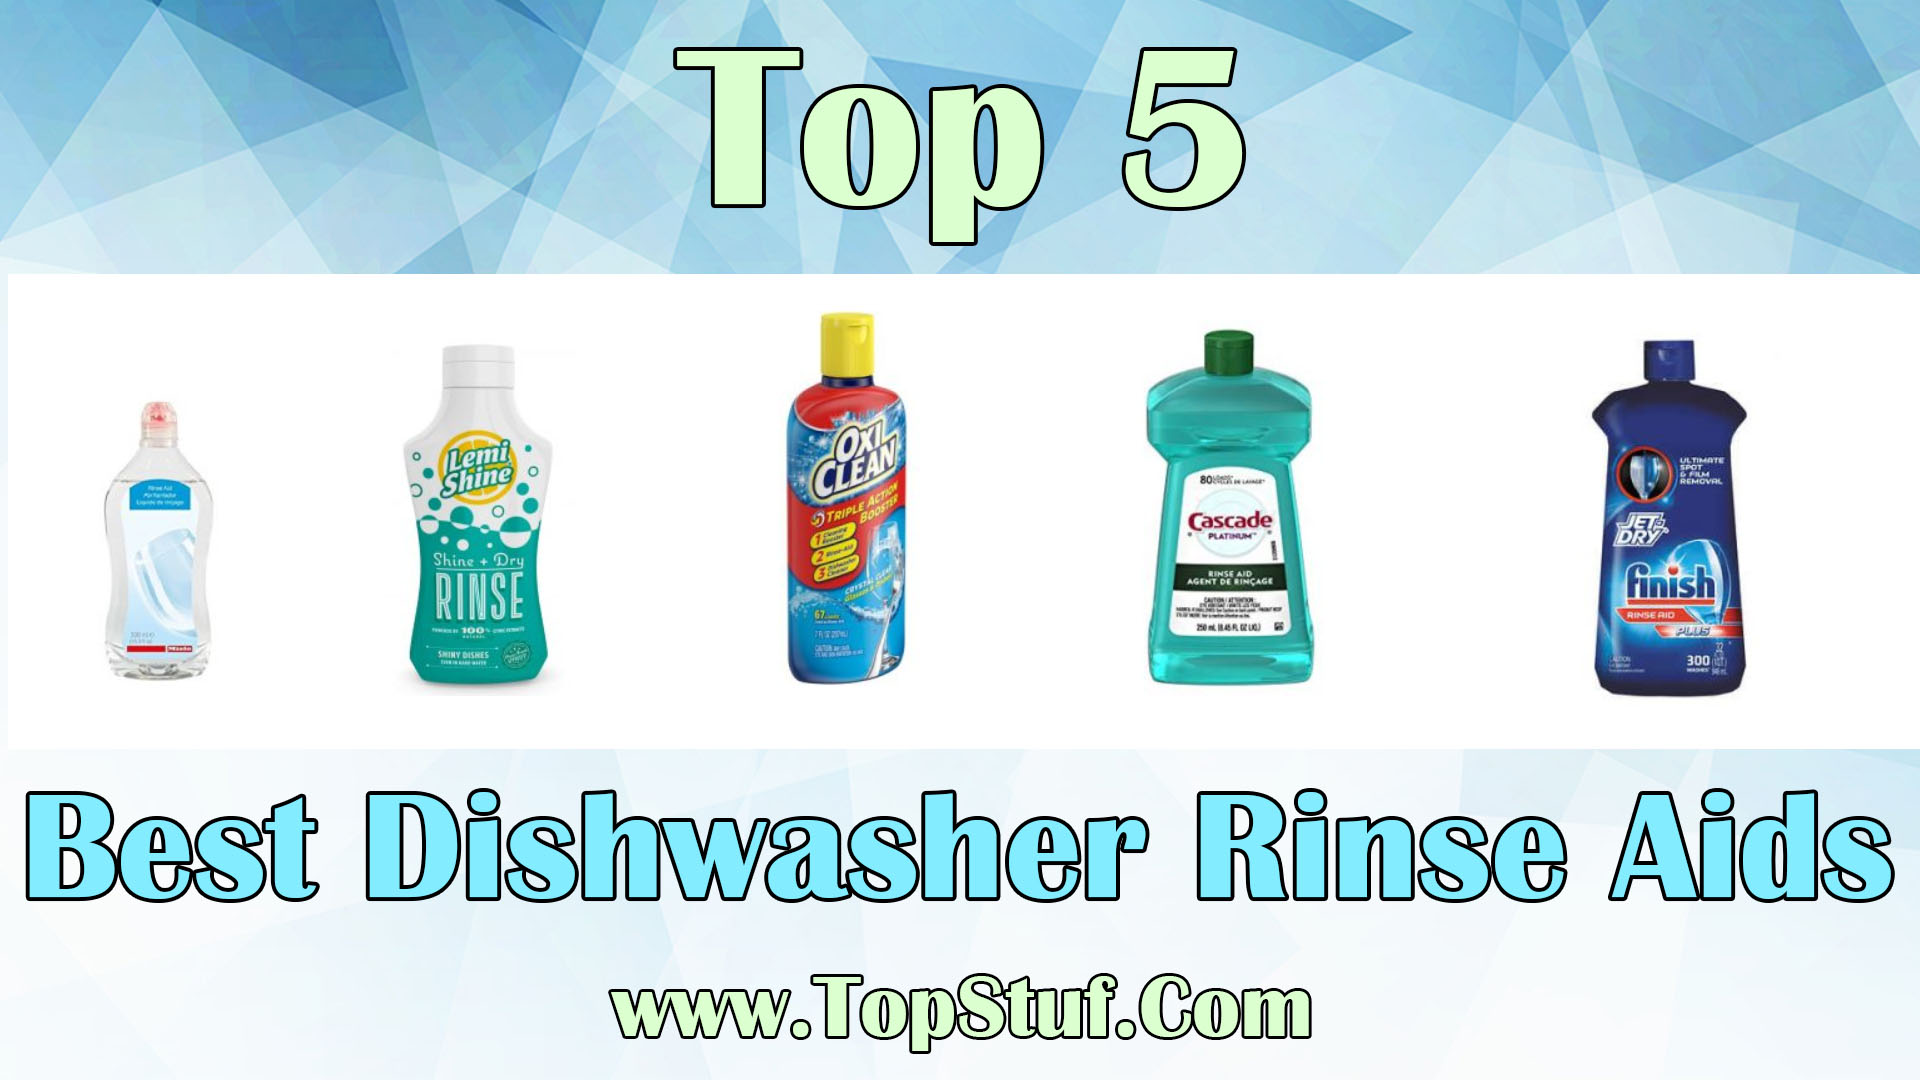 Best Dishwasher Rinse Aids